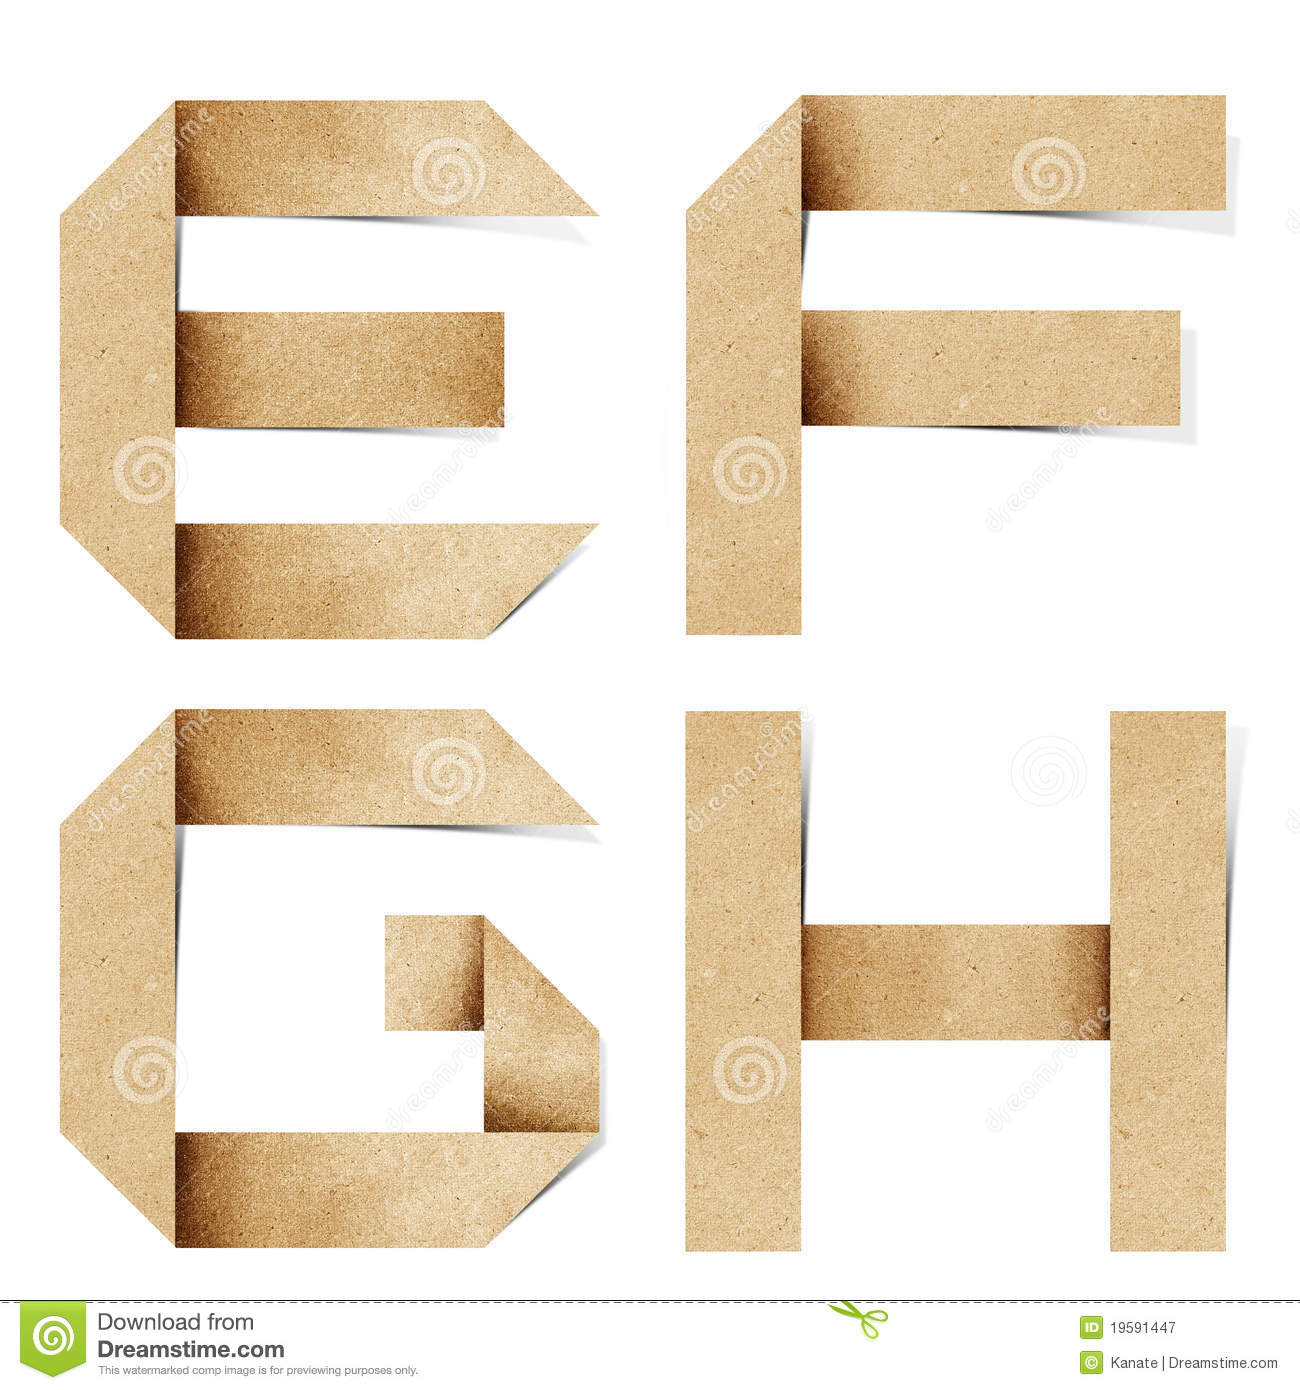 Origami alphabet letters recycled paper craft royalty free for Alphabet letters cardboard